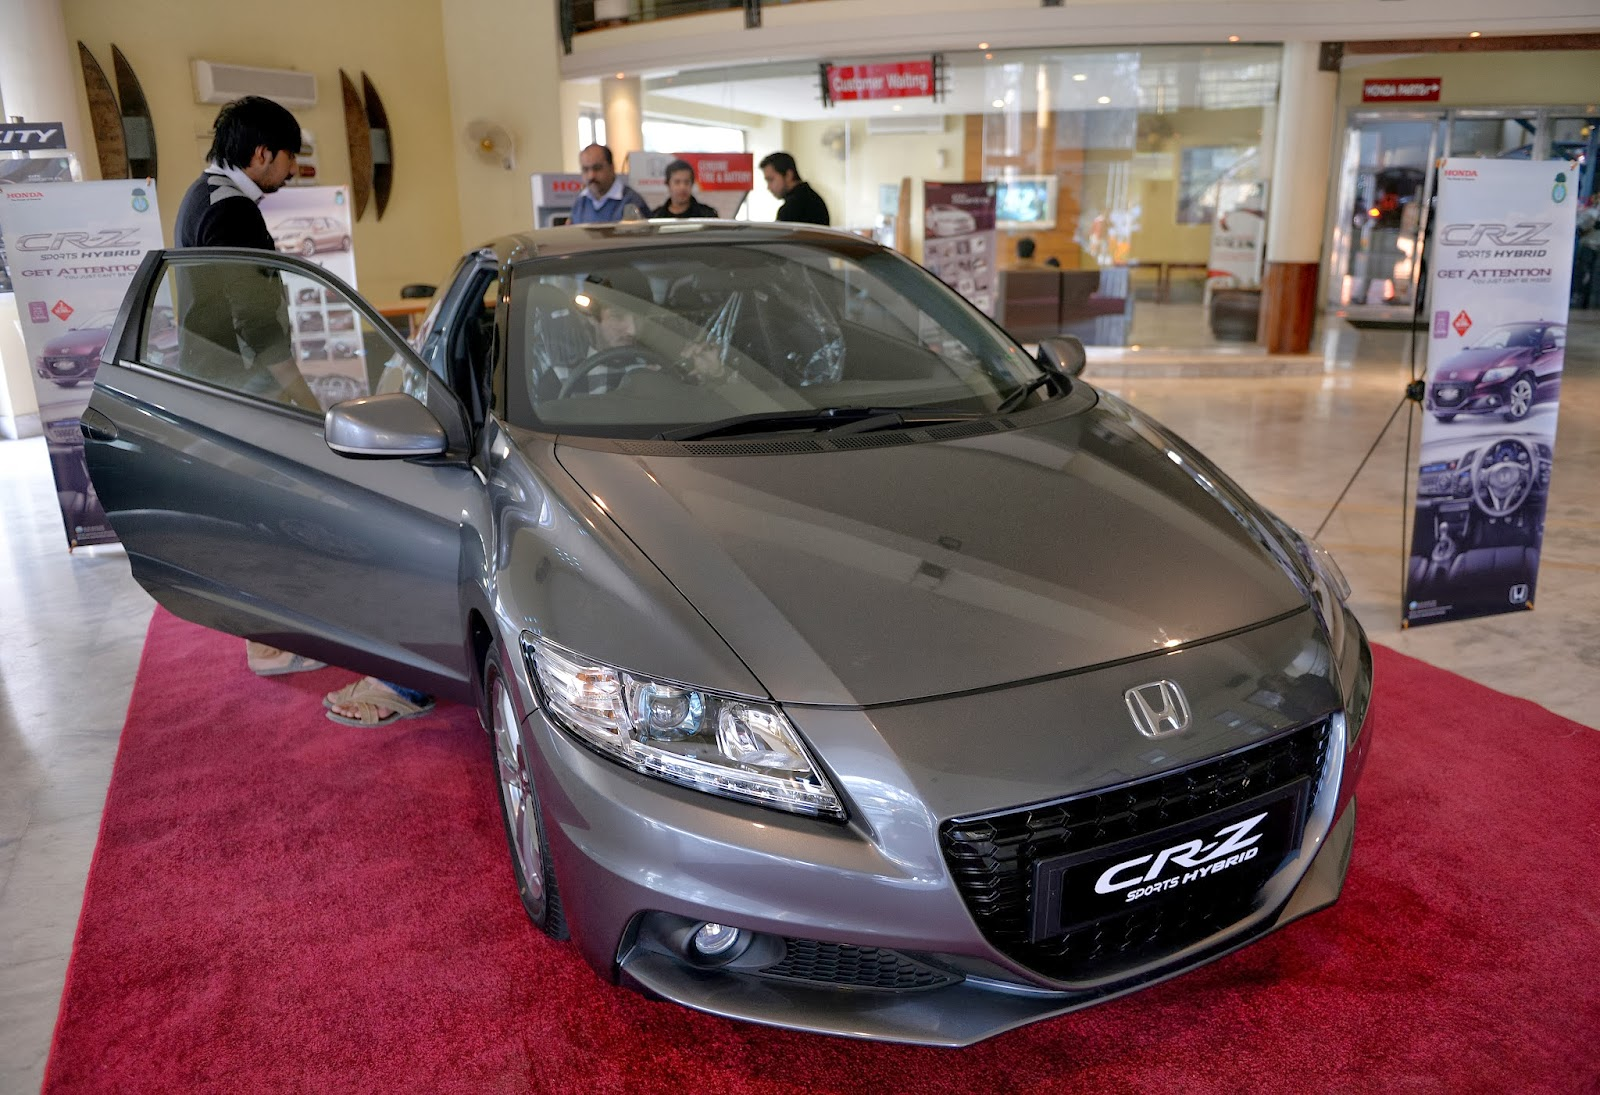 Pakistan, Transport, Cars, Energy, Hybrid, Environment, Business, Economy, Honda, Sports Car, Islamabad, Customers, Electric, CR-Z,